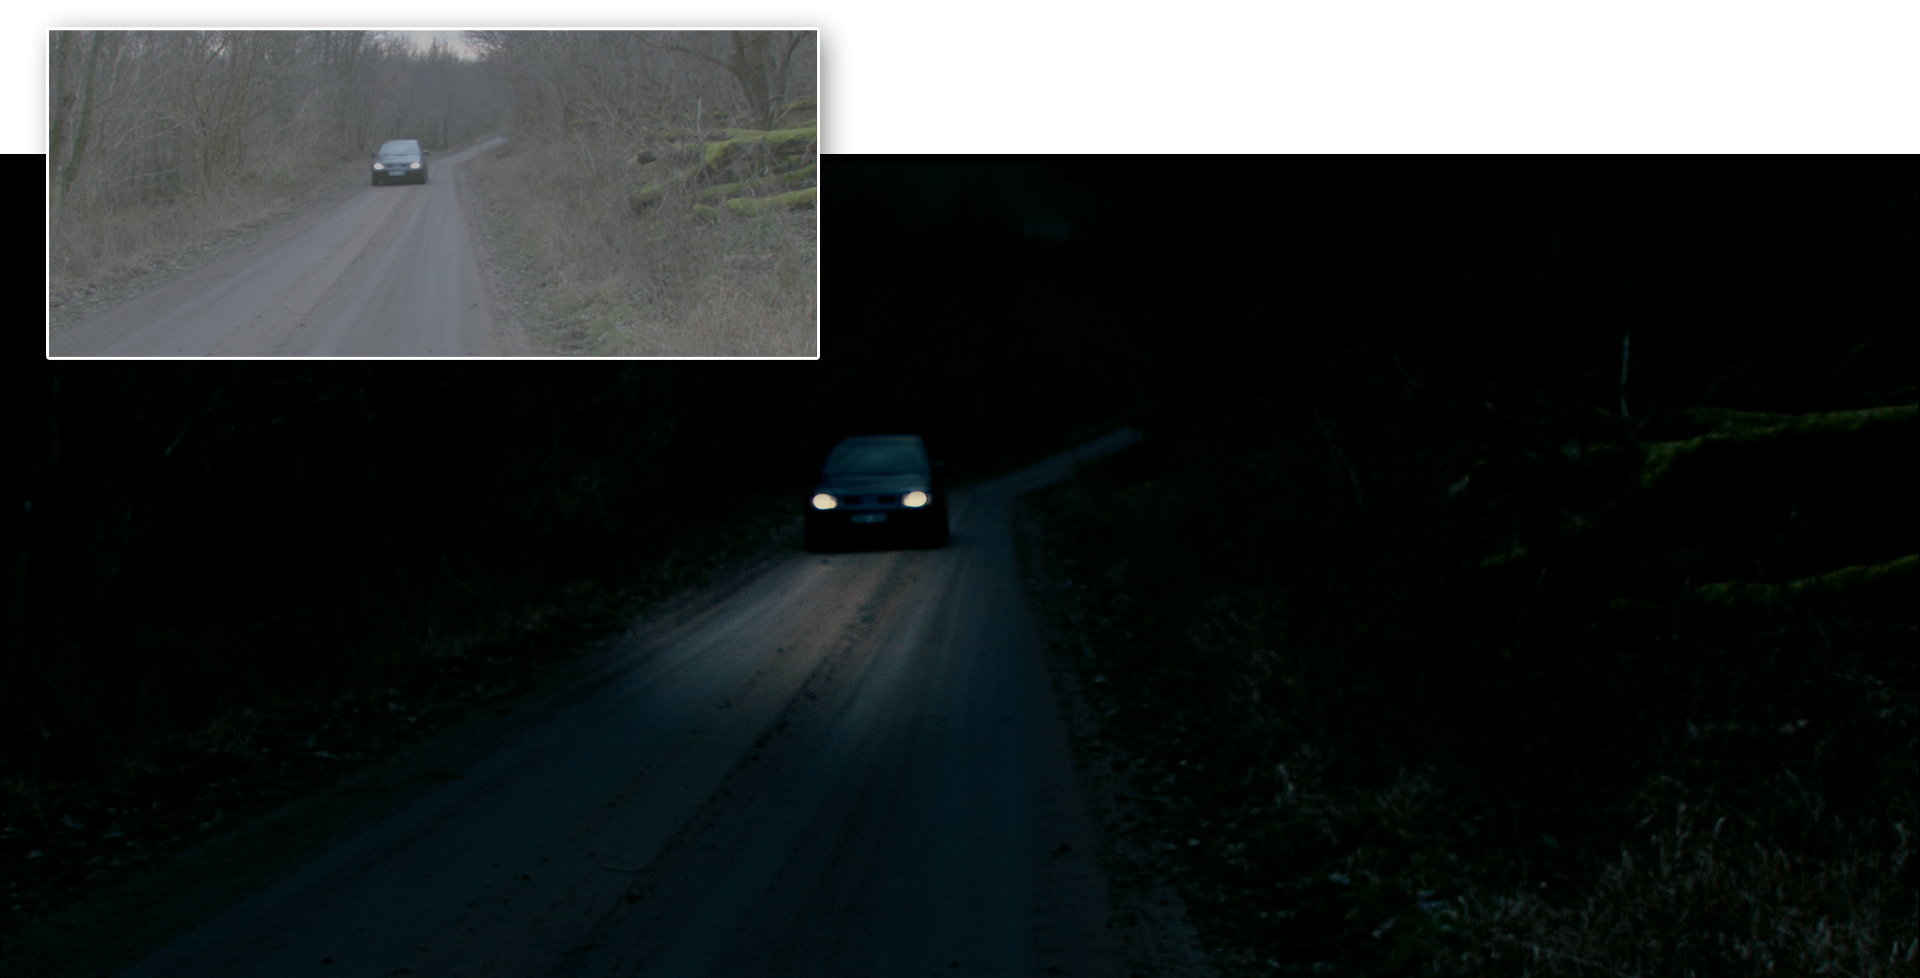 Before and after grading from The Wake Wood: The shot required luminance keys, and several shapes to darken the sky and landscape. The headlamp spill on the road is done with two auto tracking shapes and some key frames to create a more realistic bounce over the road surface. The whole effect was achieved in the grading suite.